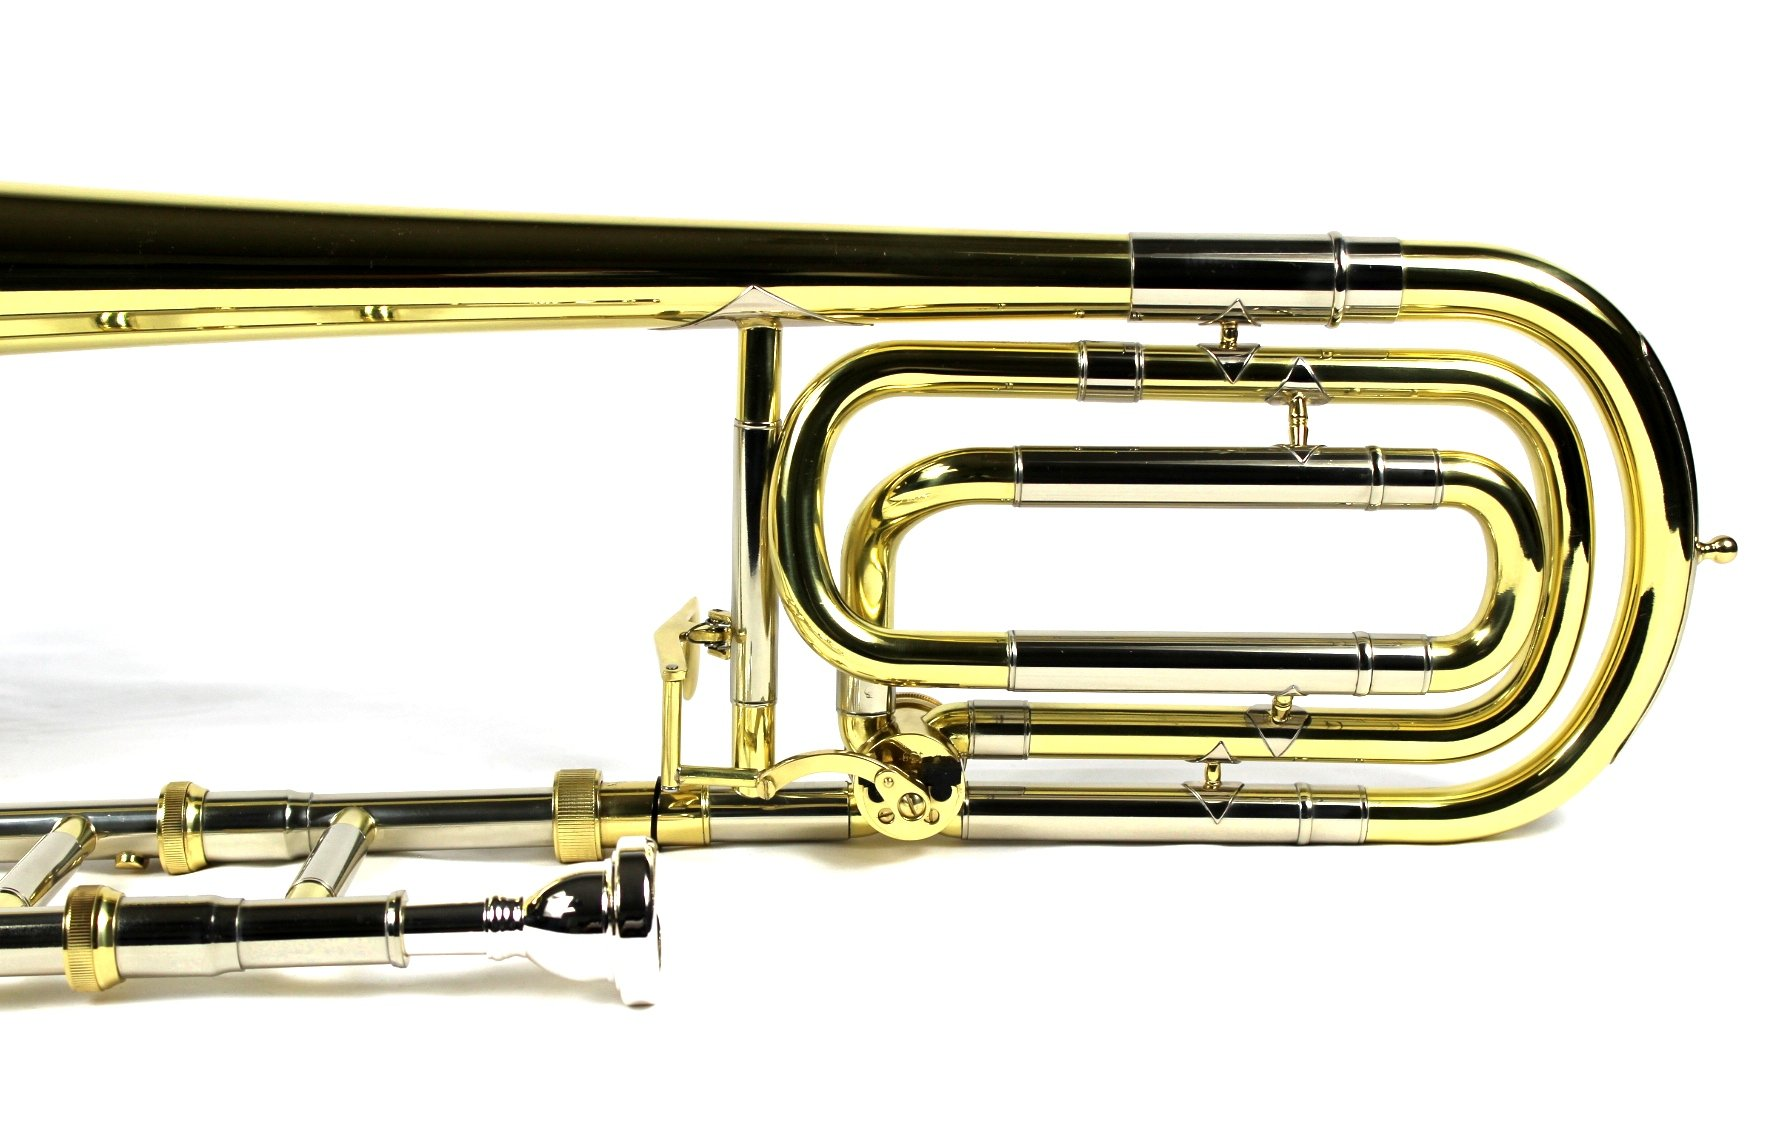 Brand New Bb/F Bass Trombone w/ Case and Mouthpiece- Gold Lacquer Finish by Moz (Image #7)